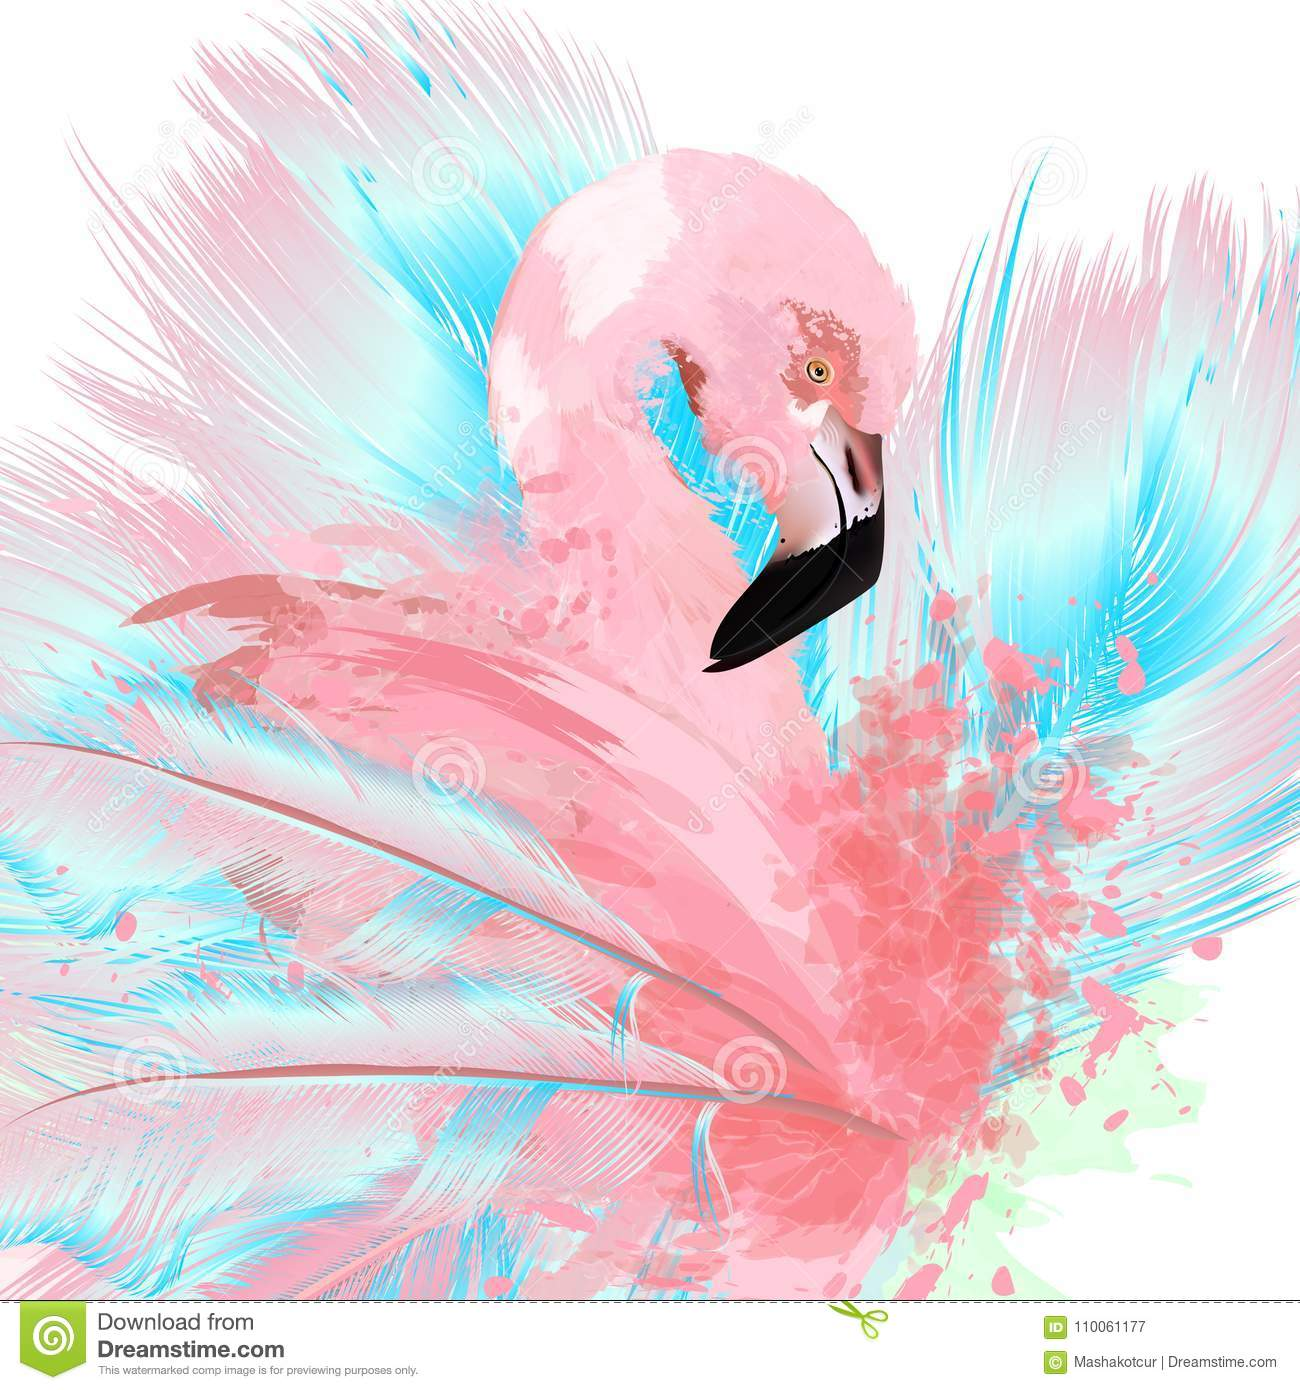 Beautiful vector illustration with drawn pink flamingo and blue